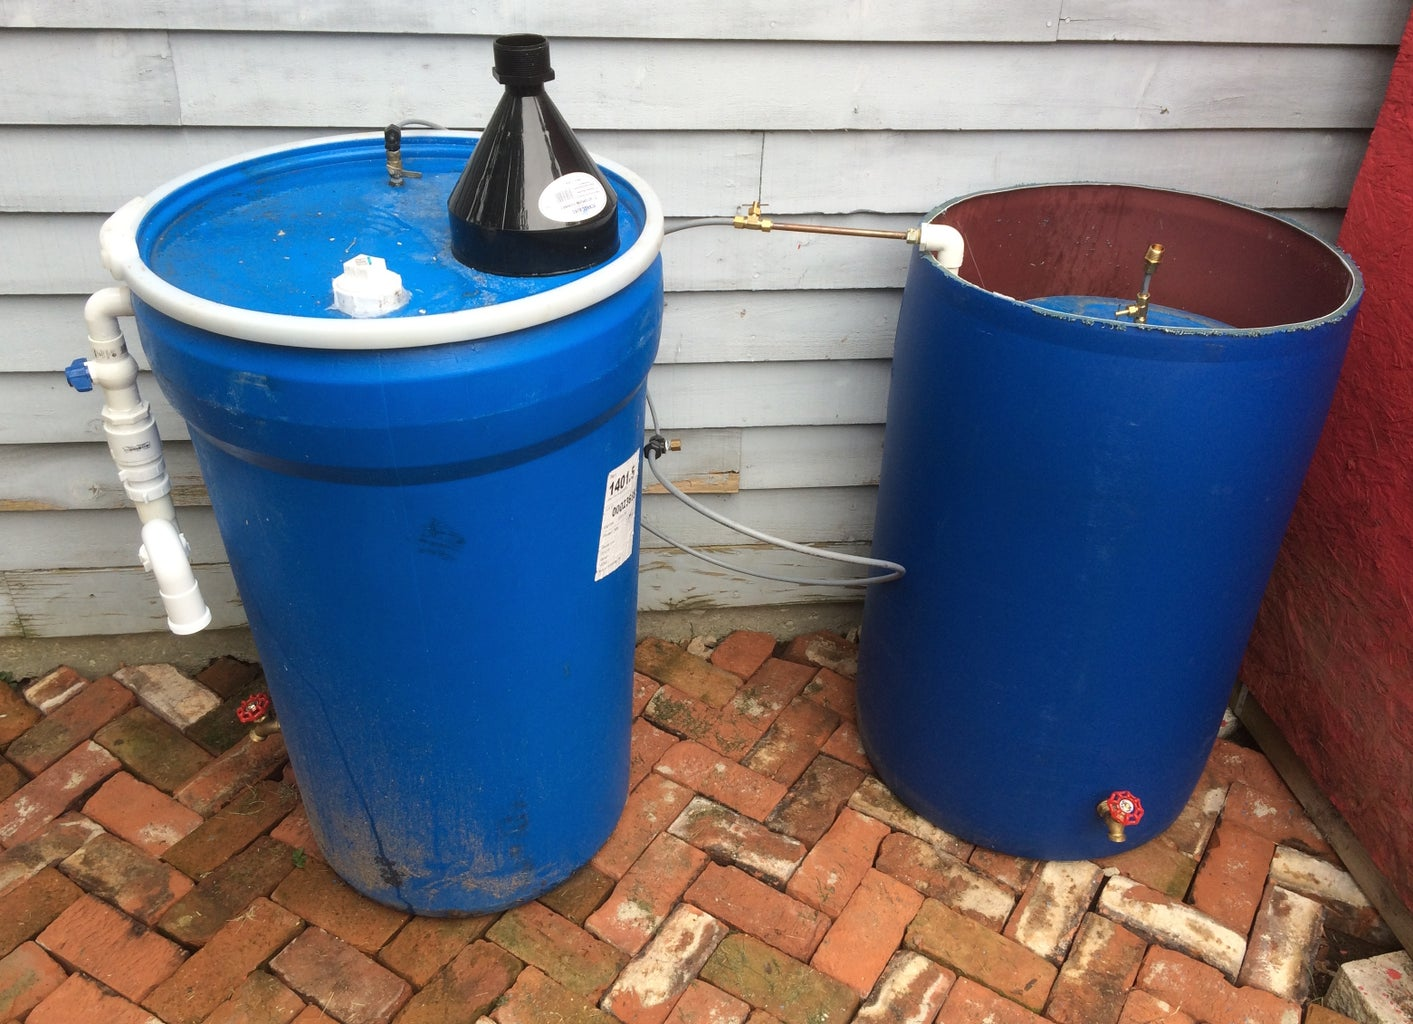 Connect the Digester to the Collector and Feed the Digester